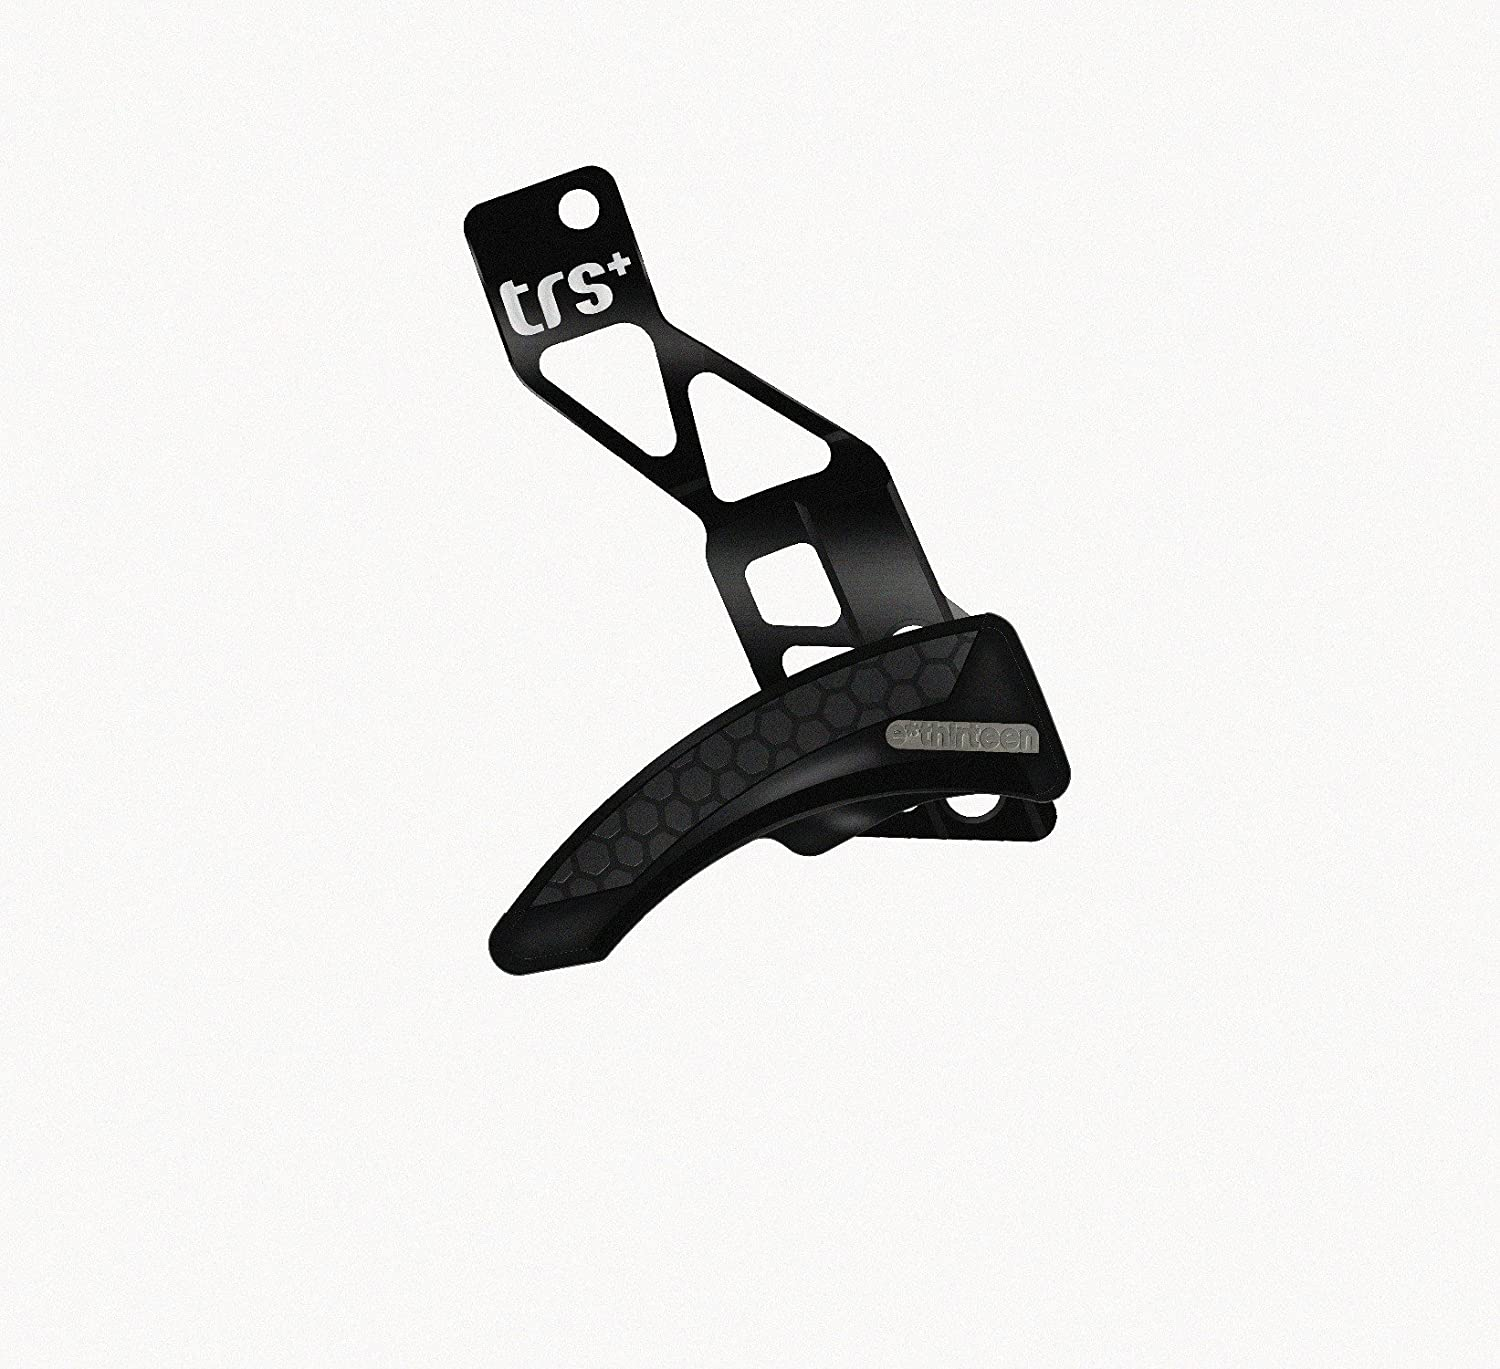 e*thirteen TRS Race Chain Guide ISCG-05 28-38t with Compact Slider and No